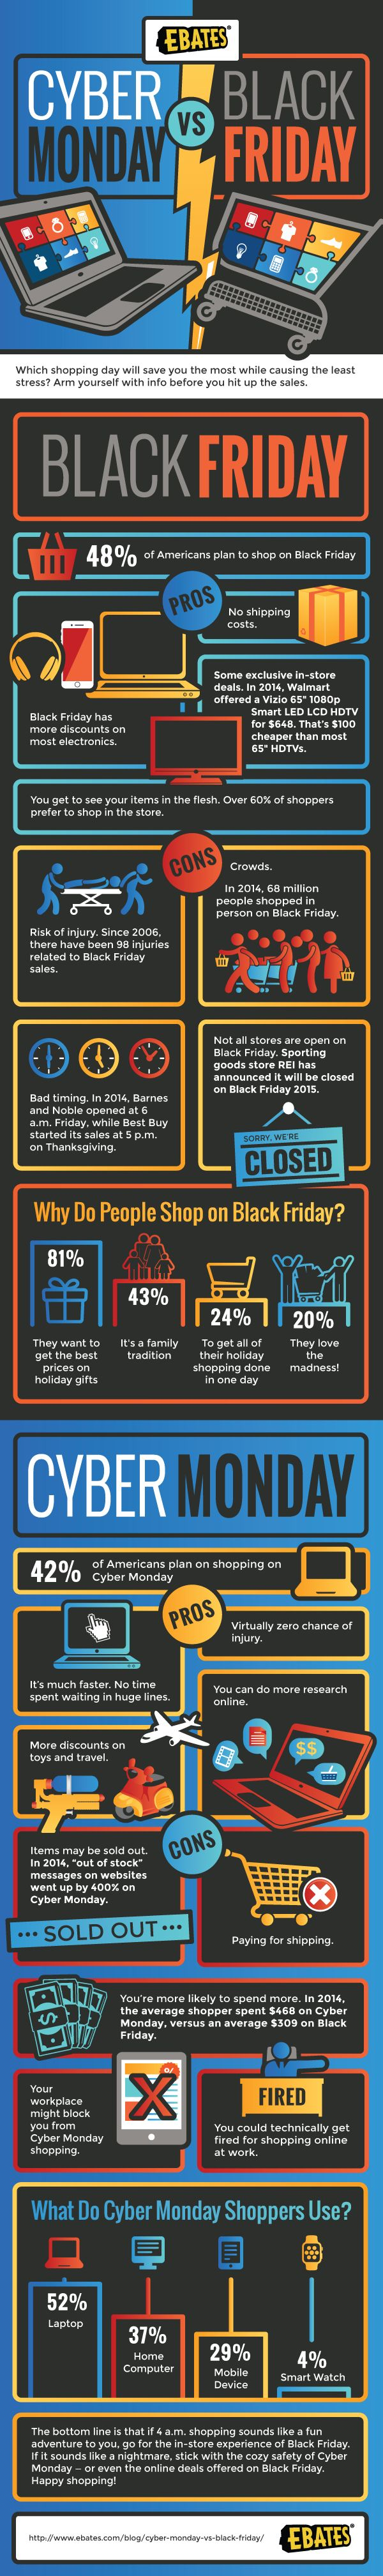 Cyber Monday vs. Black Friday #infographic